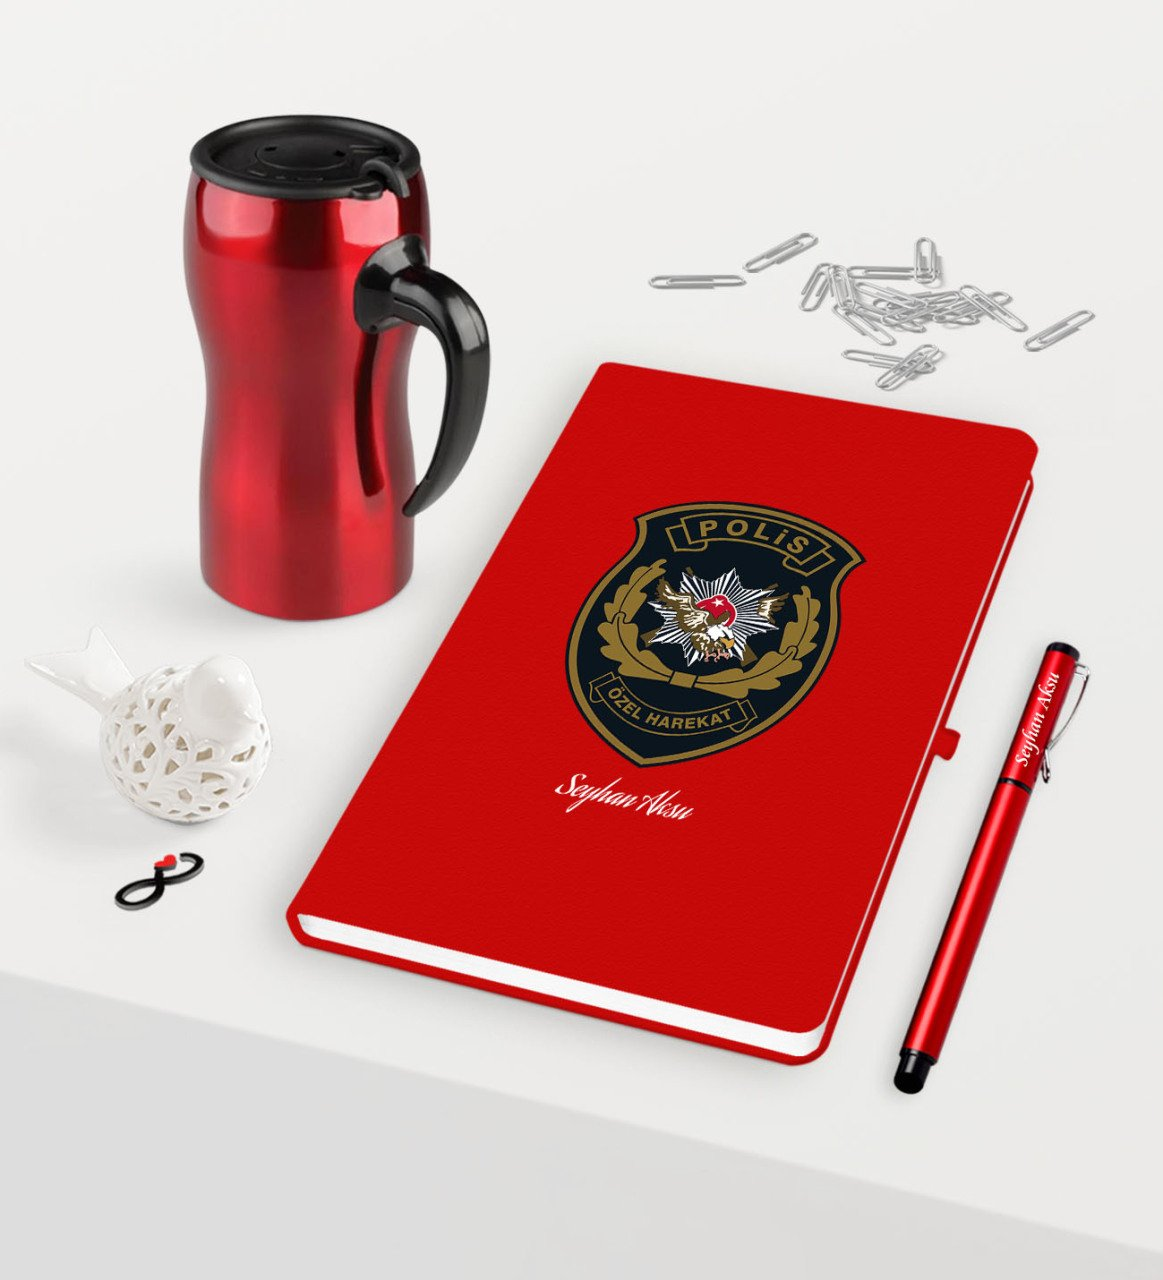 Personalized Police Special Harekat Themed Red Notebook Pen Thermos Mug Set